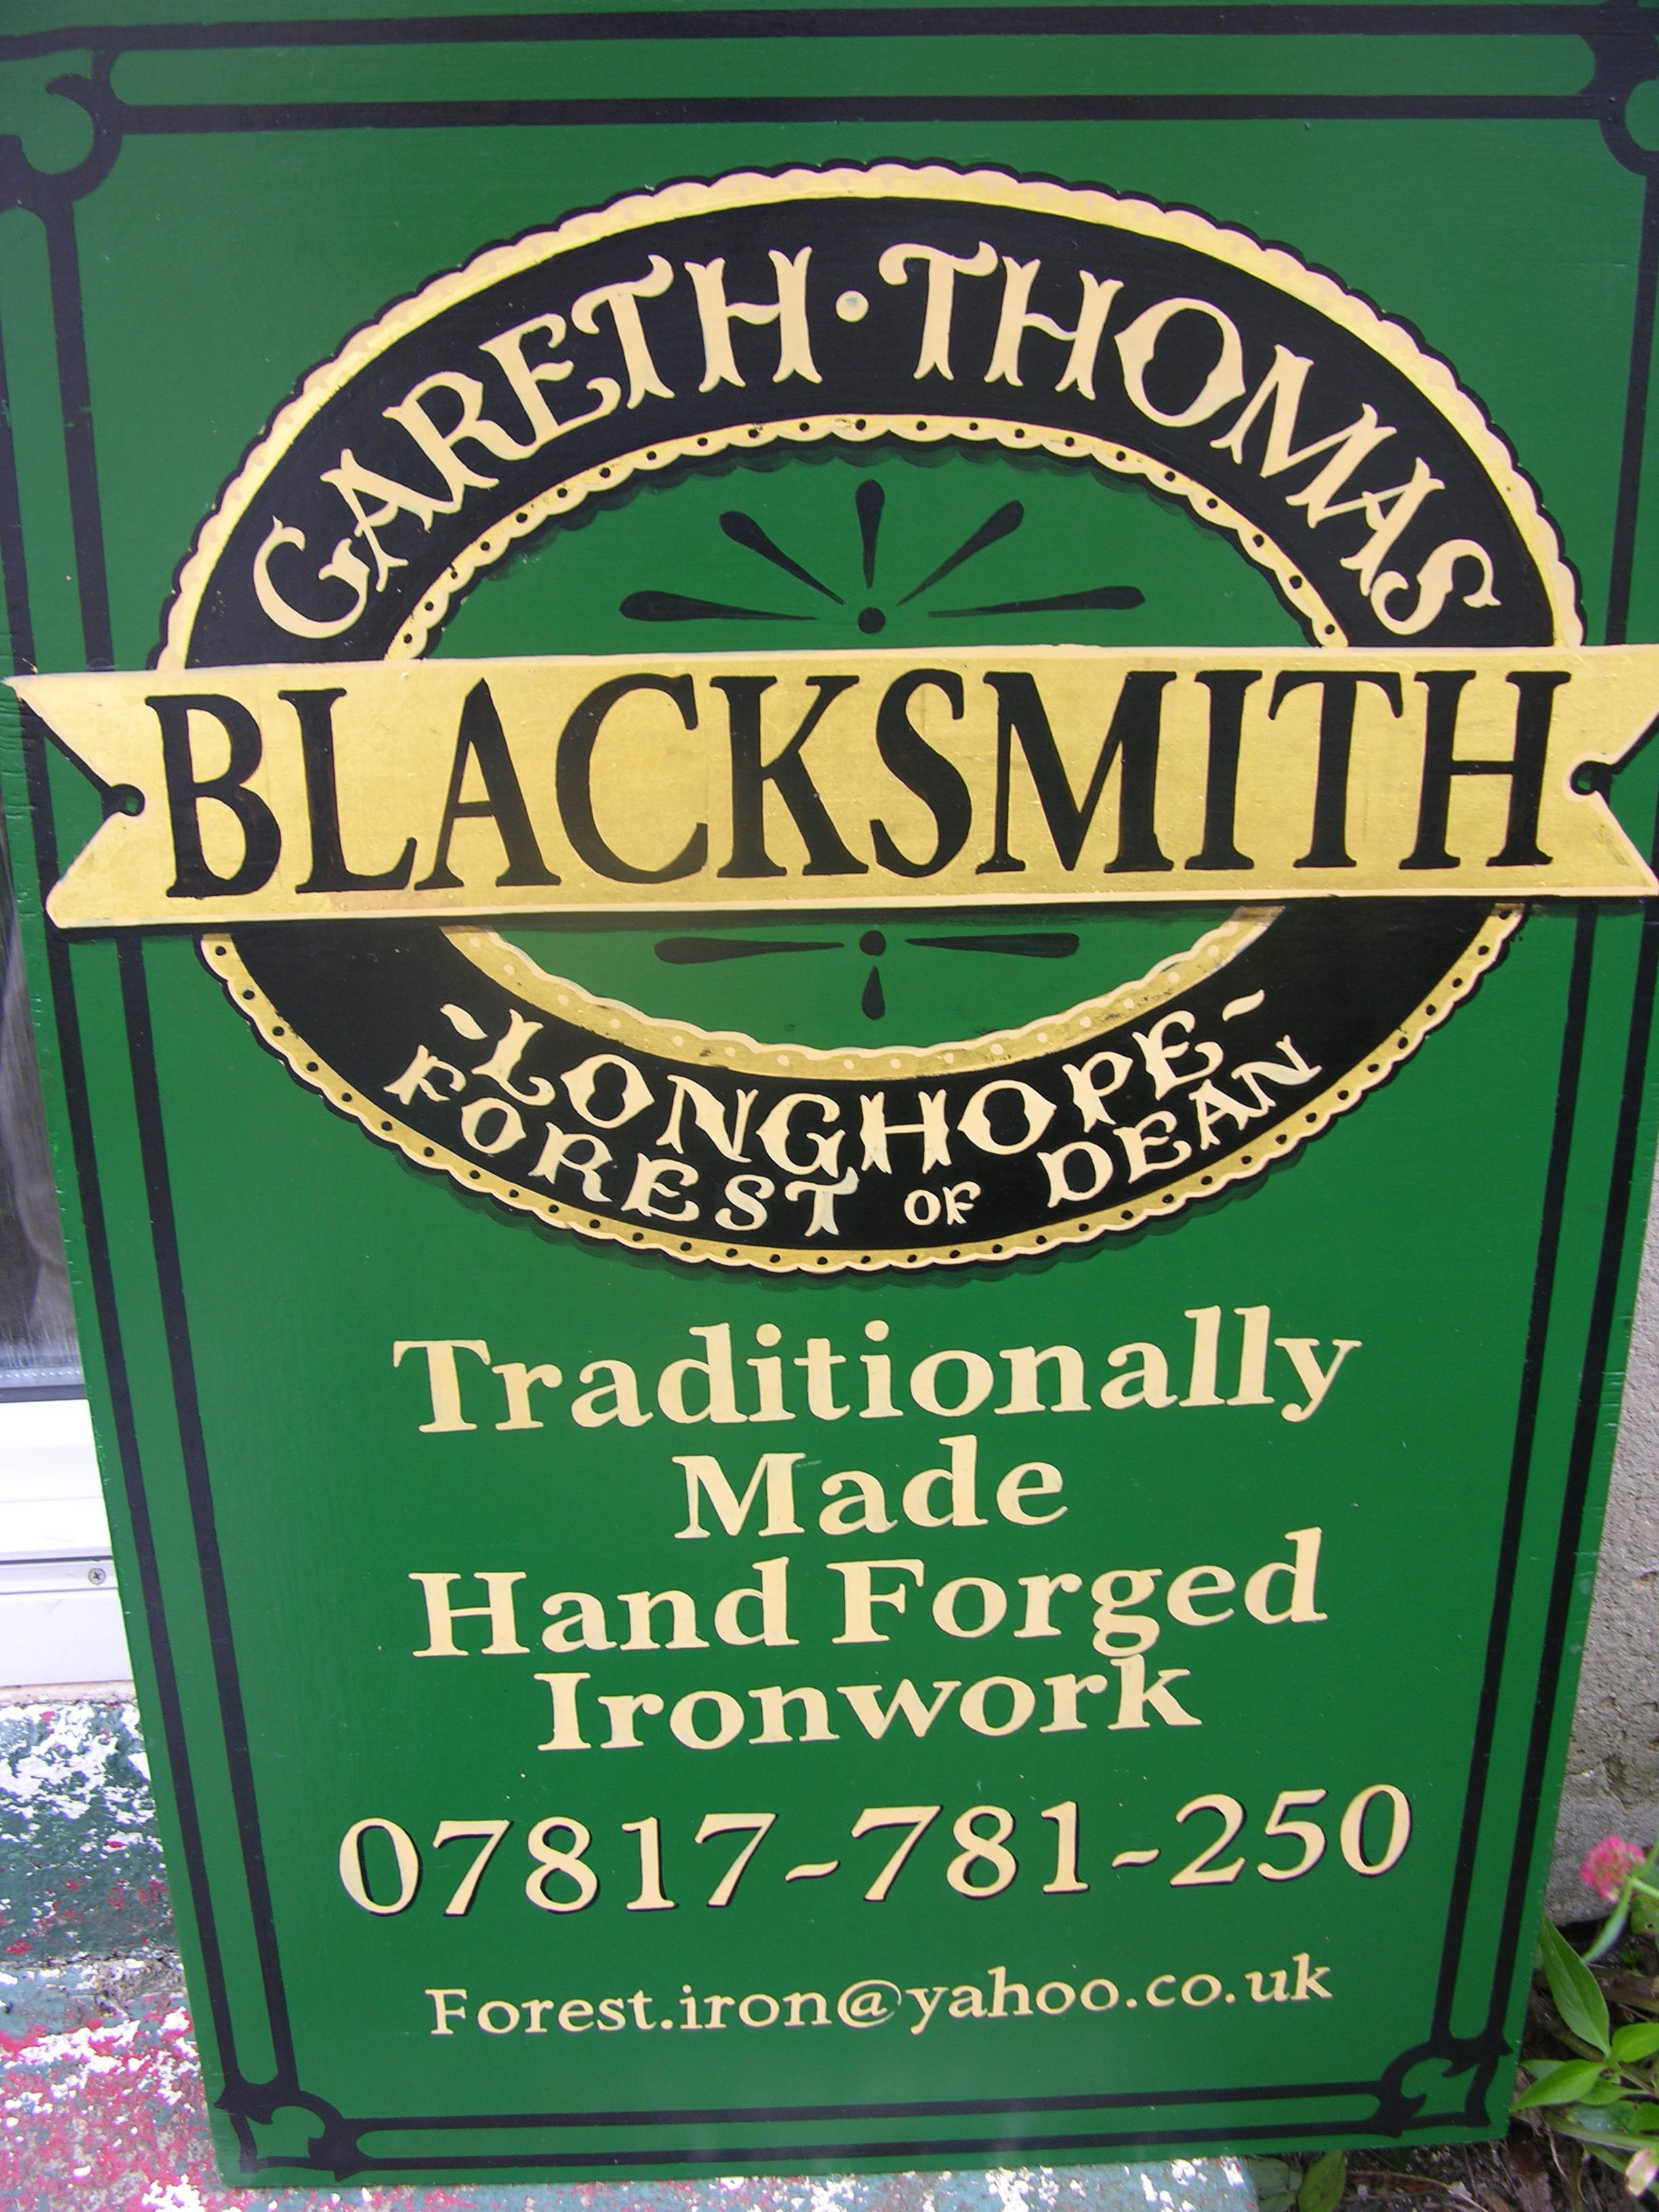 Sign board for Gareth THomas, Green and gold leaf with black lettering